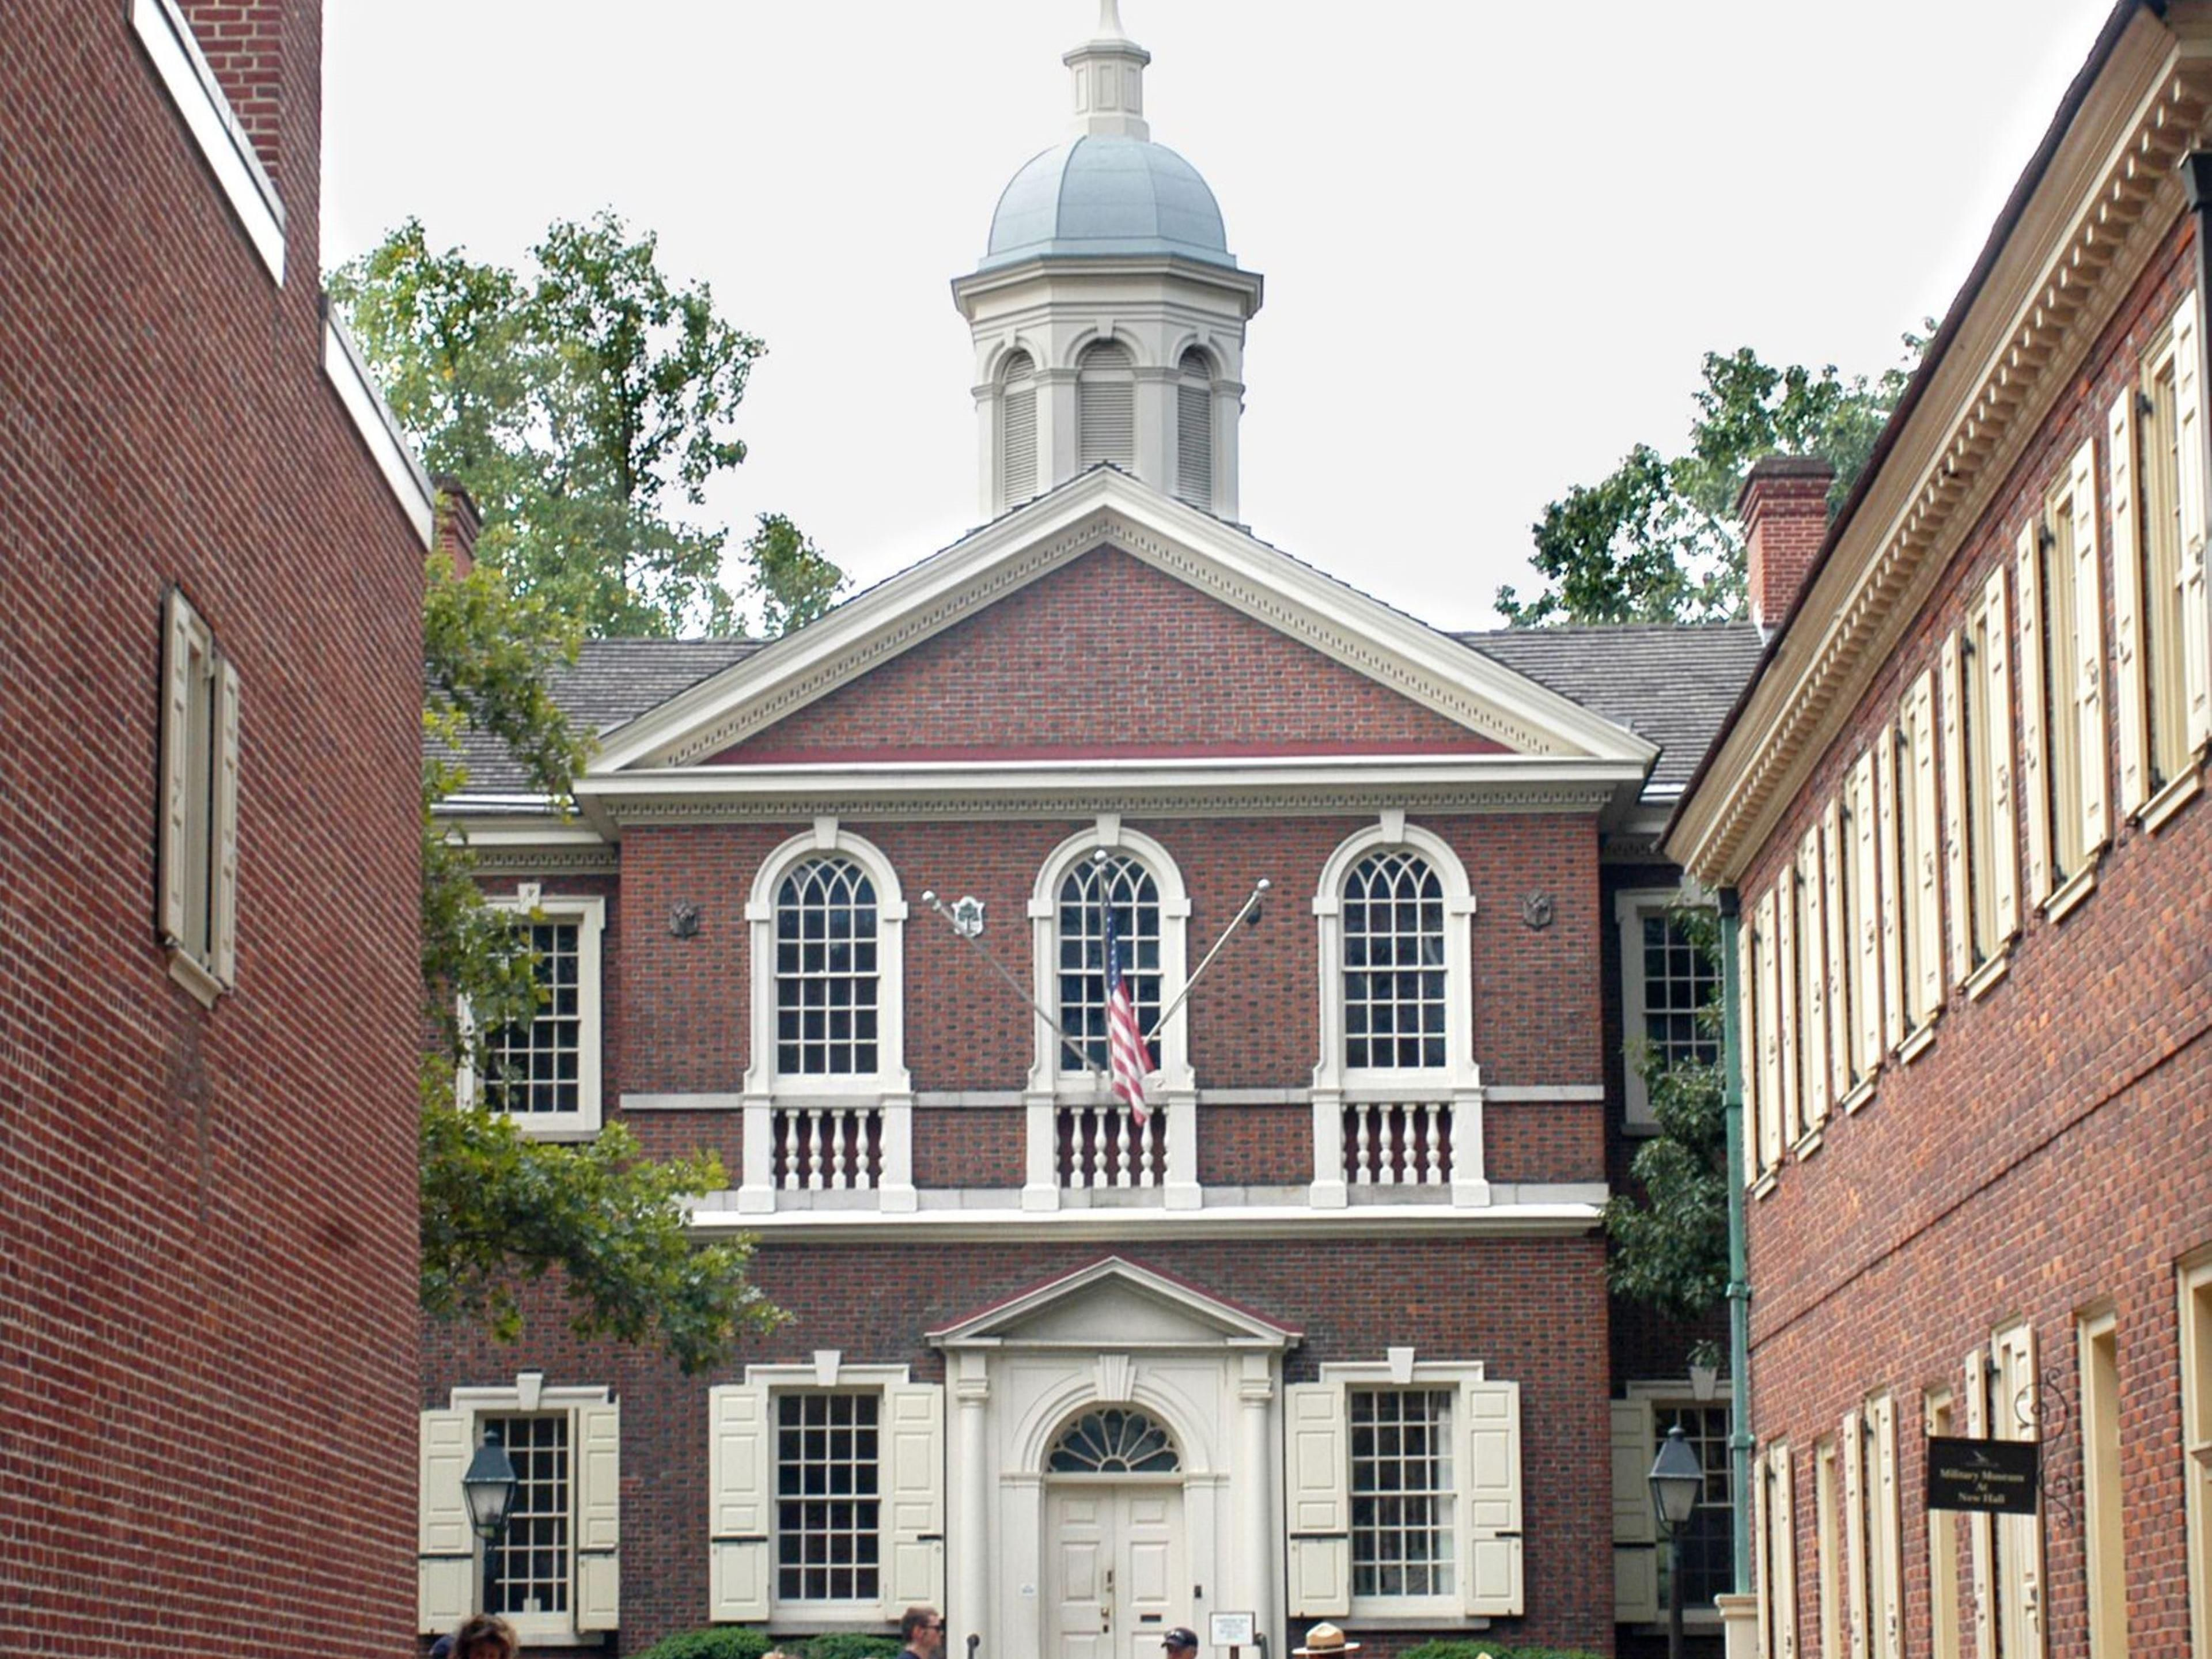 Carpenters' Hall is only 8 blocks away, near the Liberty Bell.